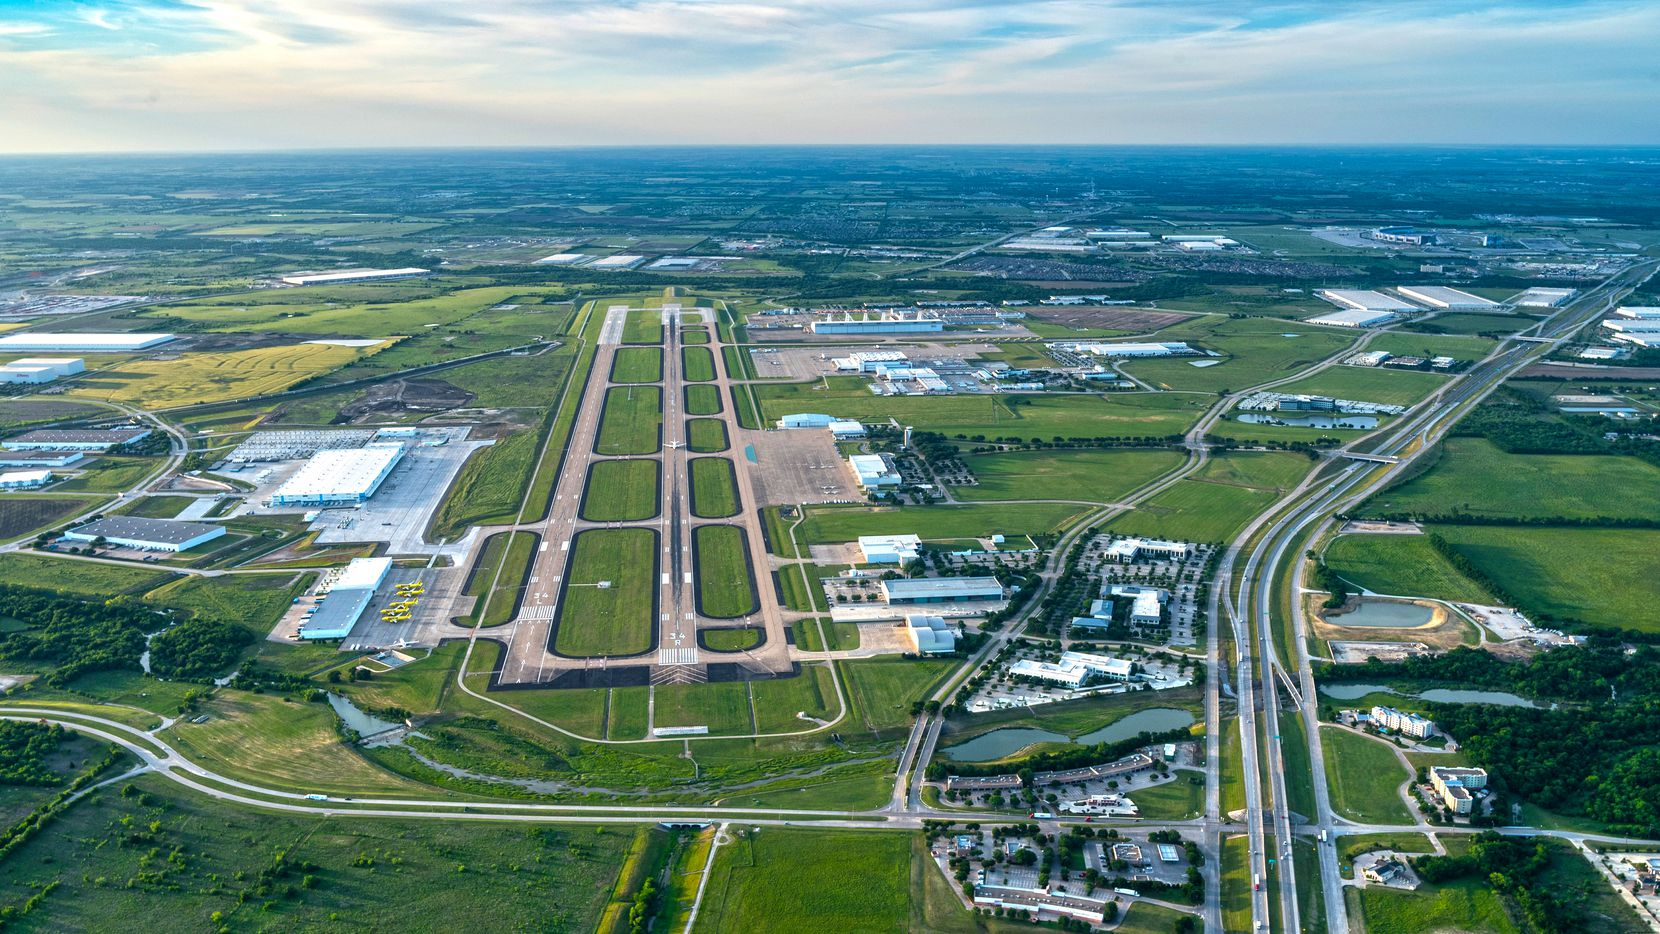 The 27,000-acre AllianceTexas development north of Fort Worth is one of the Dallas-Fort Worth area's largest warehouse and distribution markets.